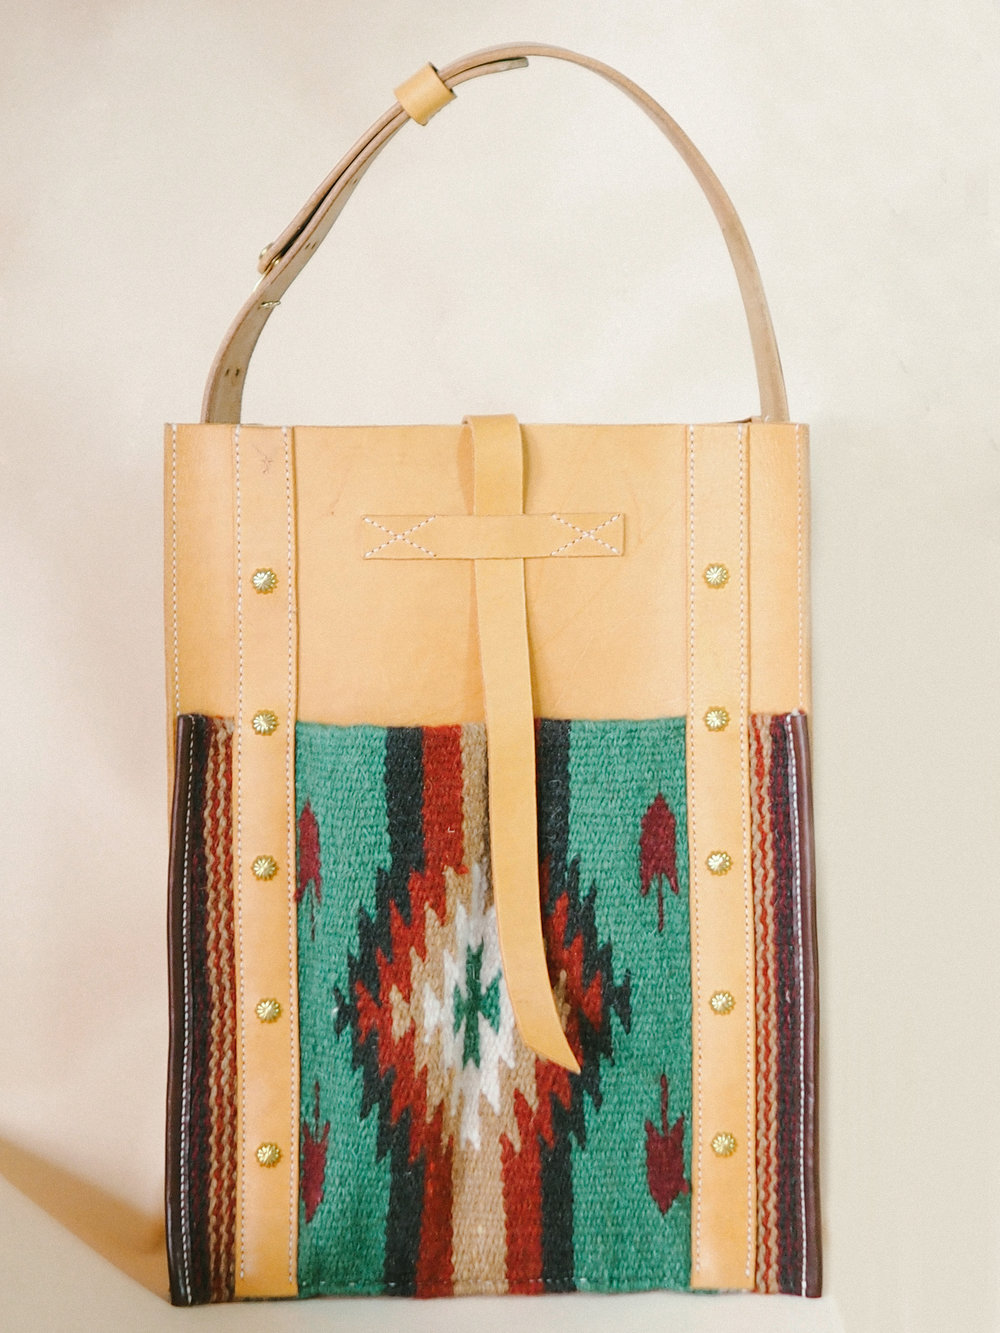 Handmade leather tote with Navajo textile.